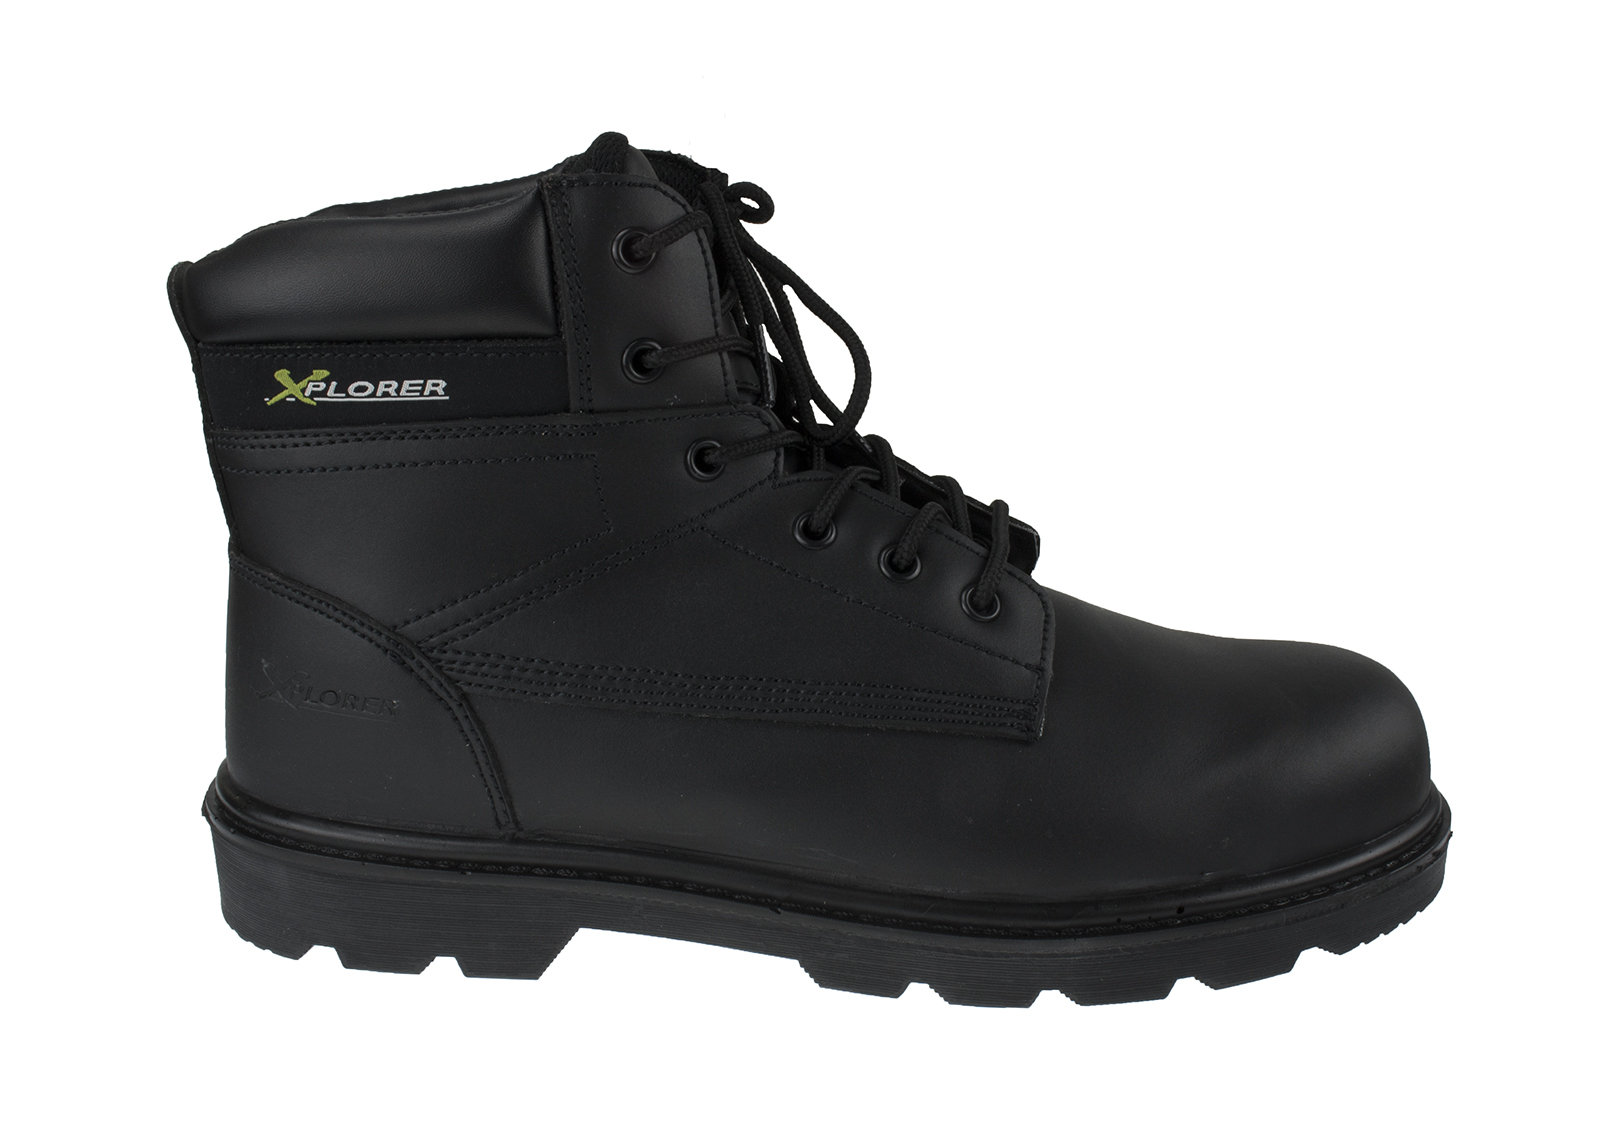 Xplorer Leather Safety Boot w/ Padded ankle support and protection - pair